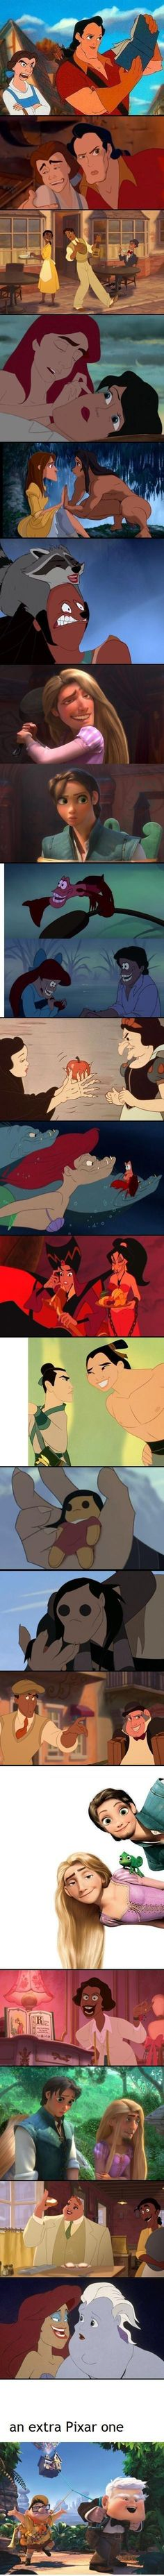 Disney Face Swaps ... the Pocahontas one made me laugh for real and so did the ariel one what the heck xD